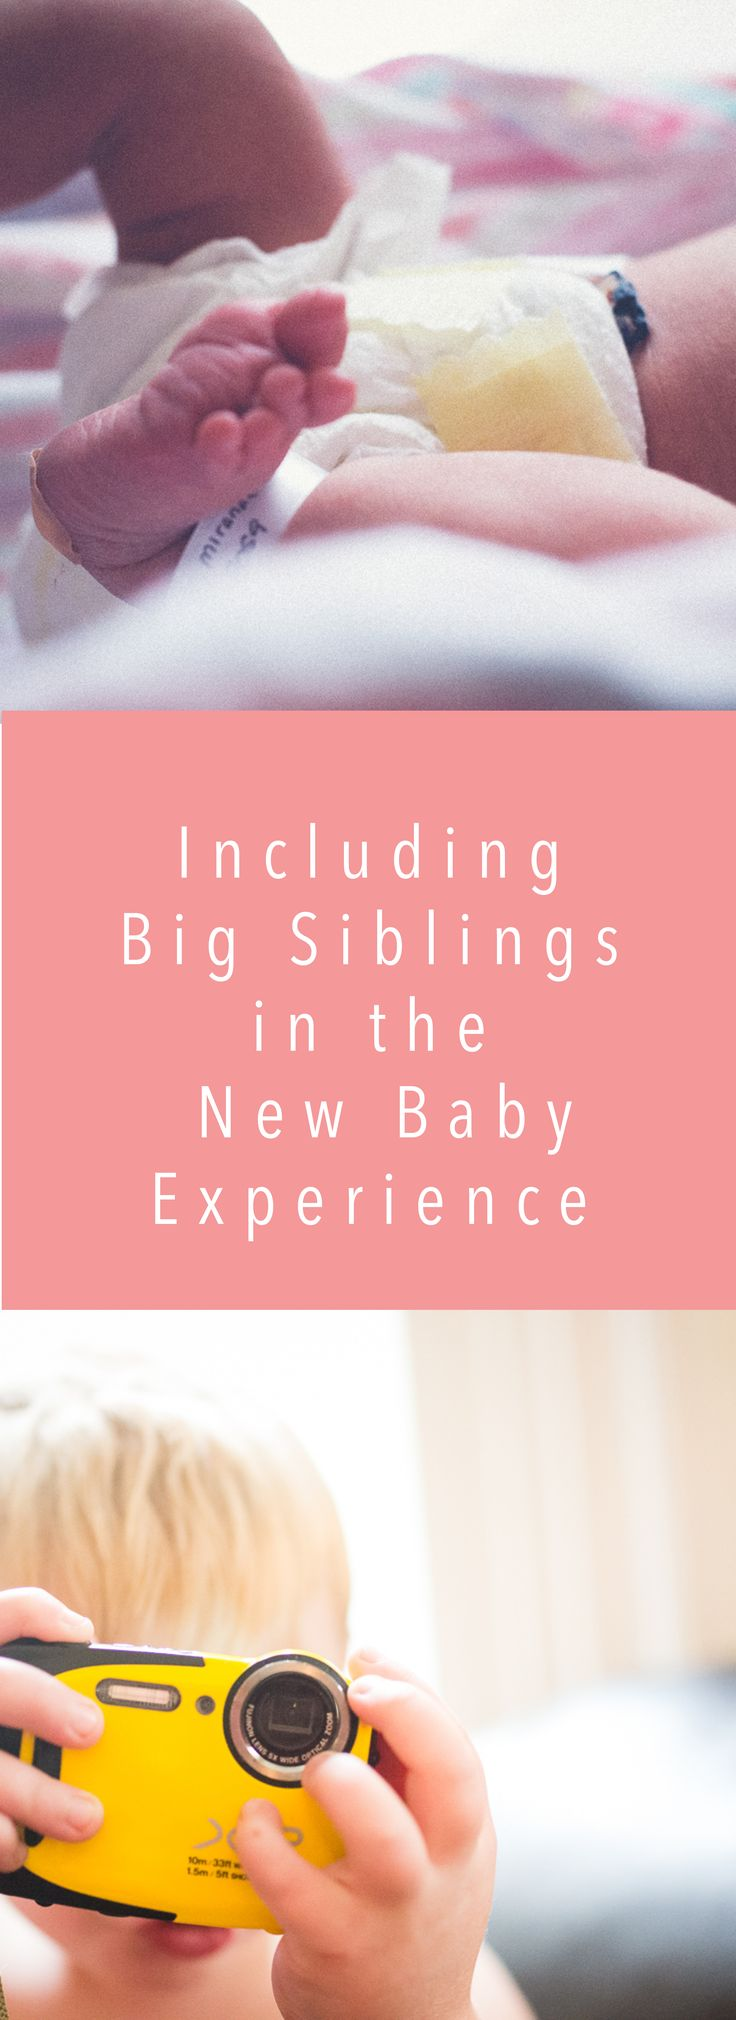 How to include Big Siblings in the Birth Experience What to include in the Big Brother or Big Sister Bag. How to make the big sibling feel included on the big day.